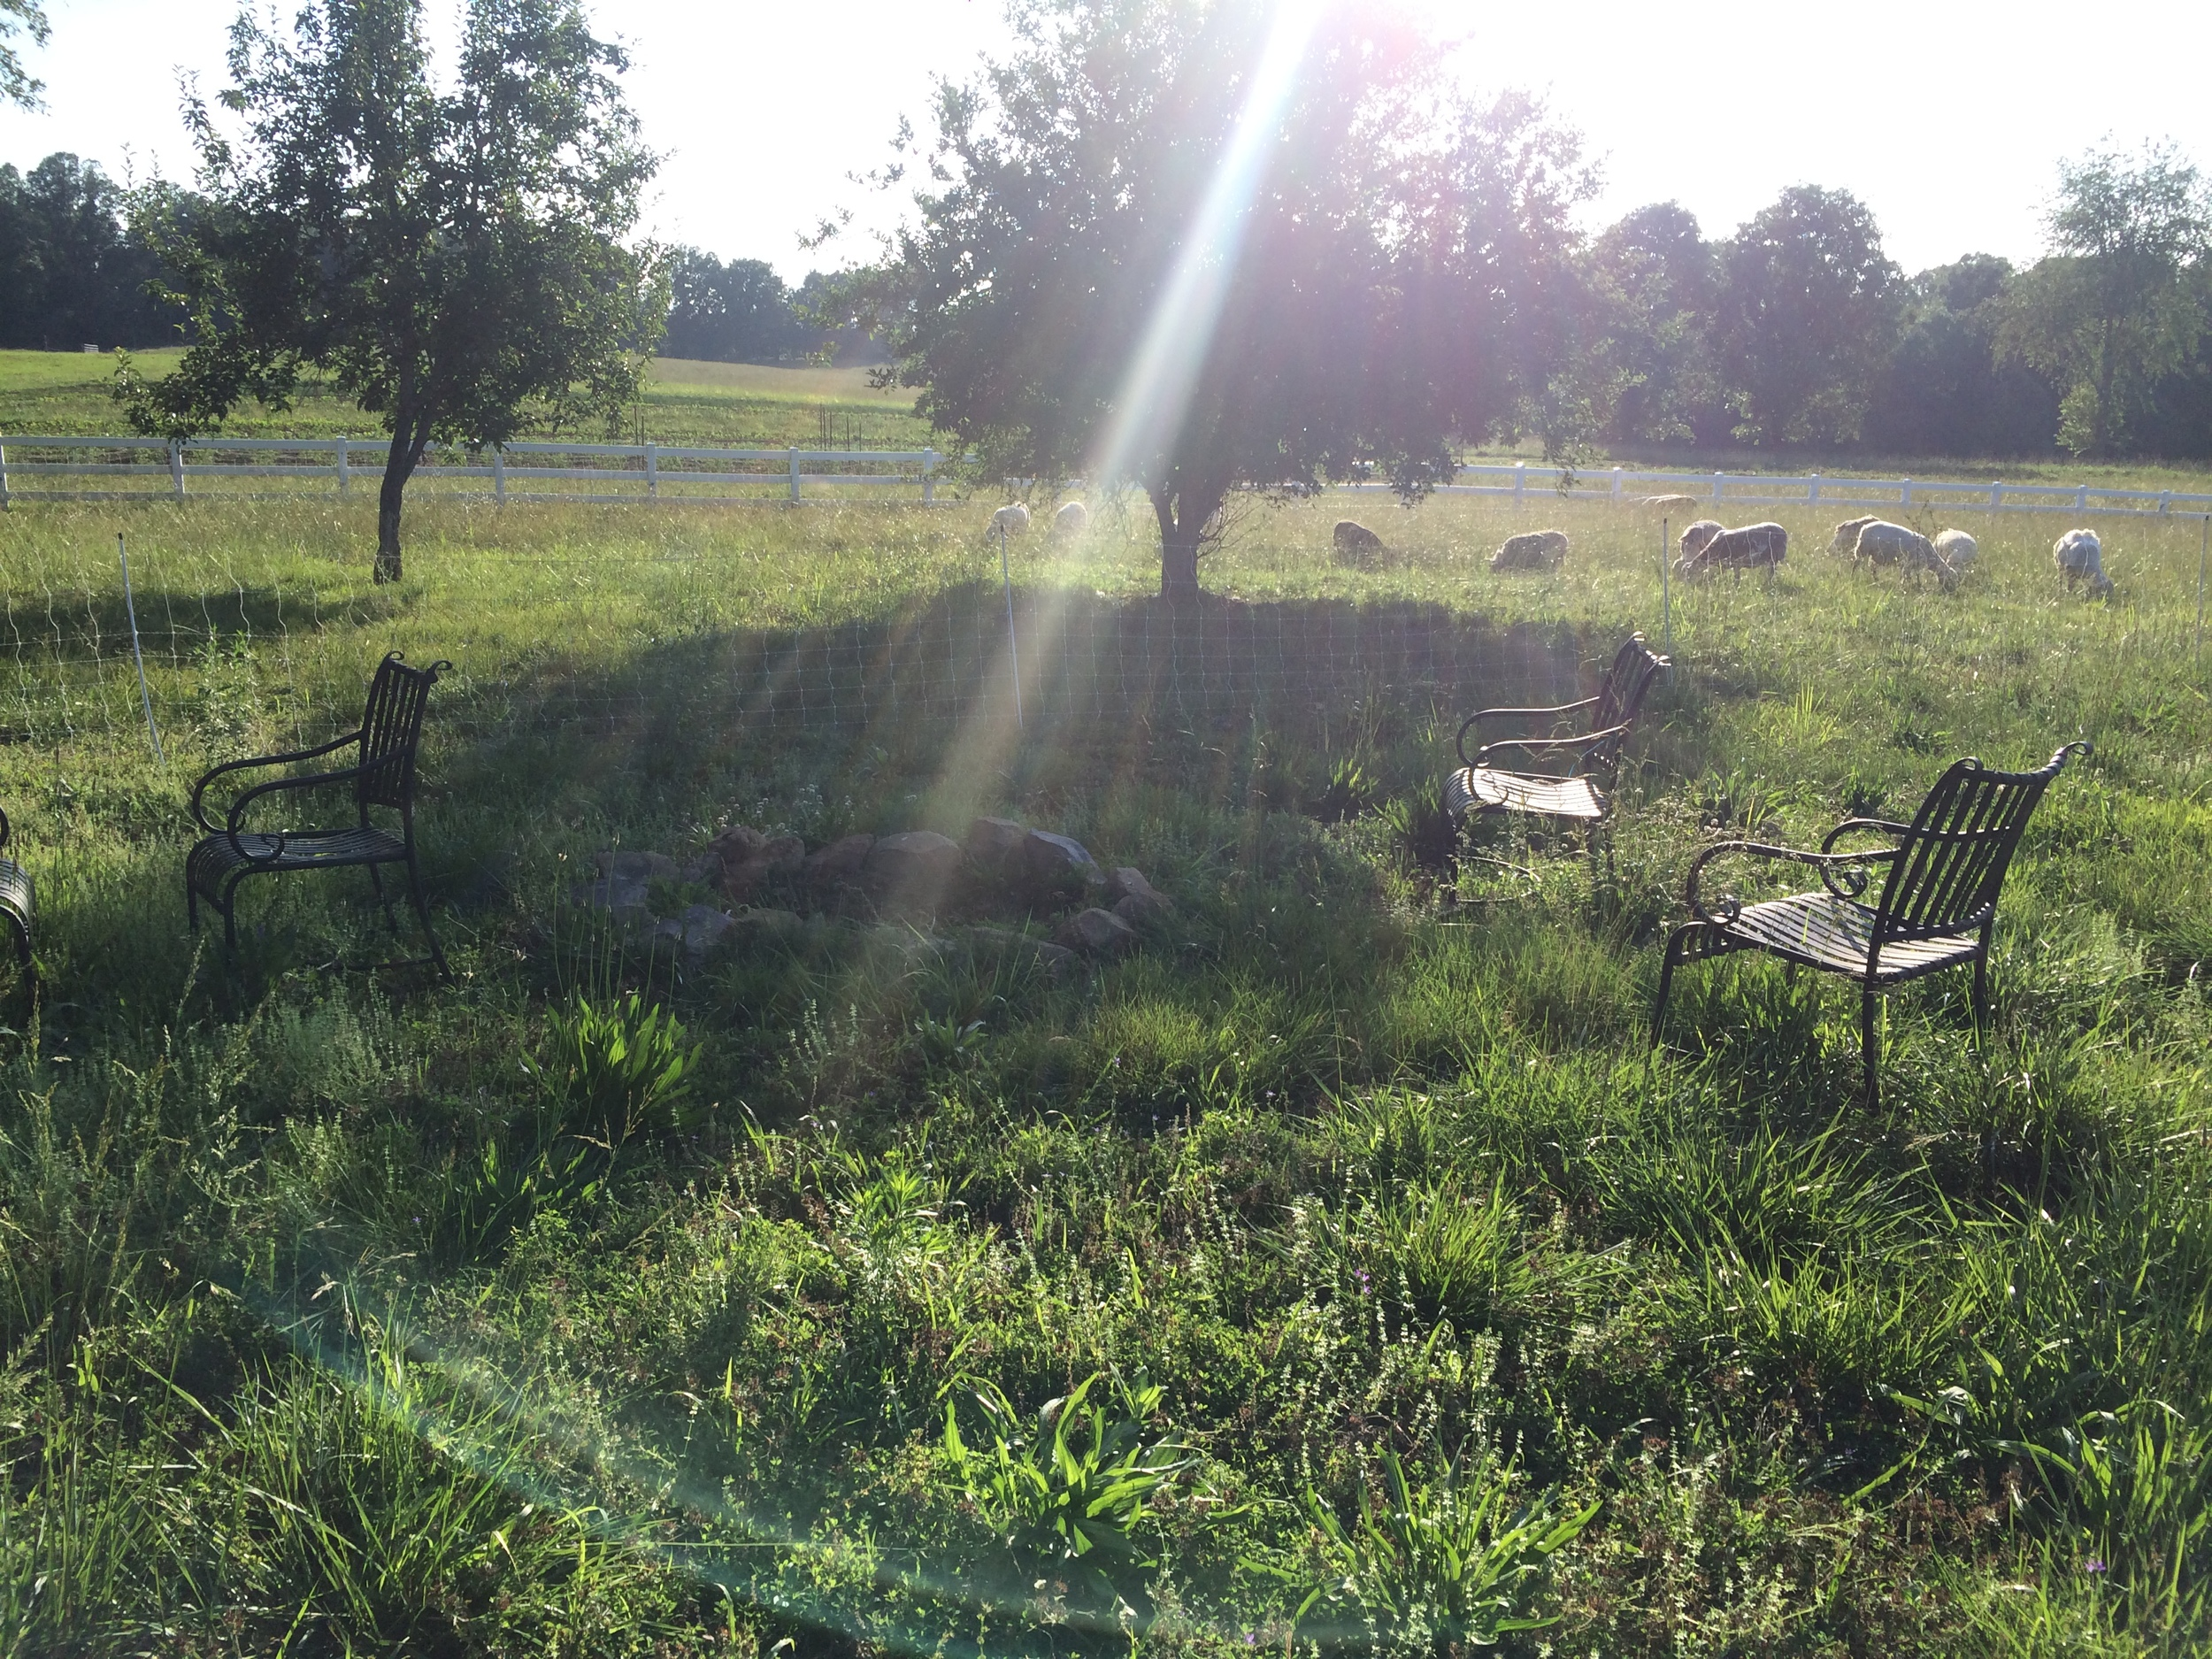 Sheep in the front yard so we have a nice view of the lambs